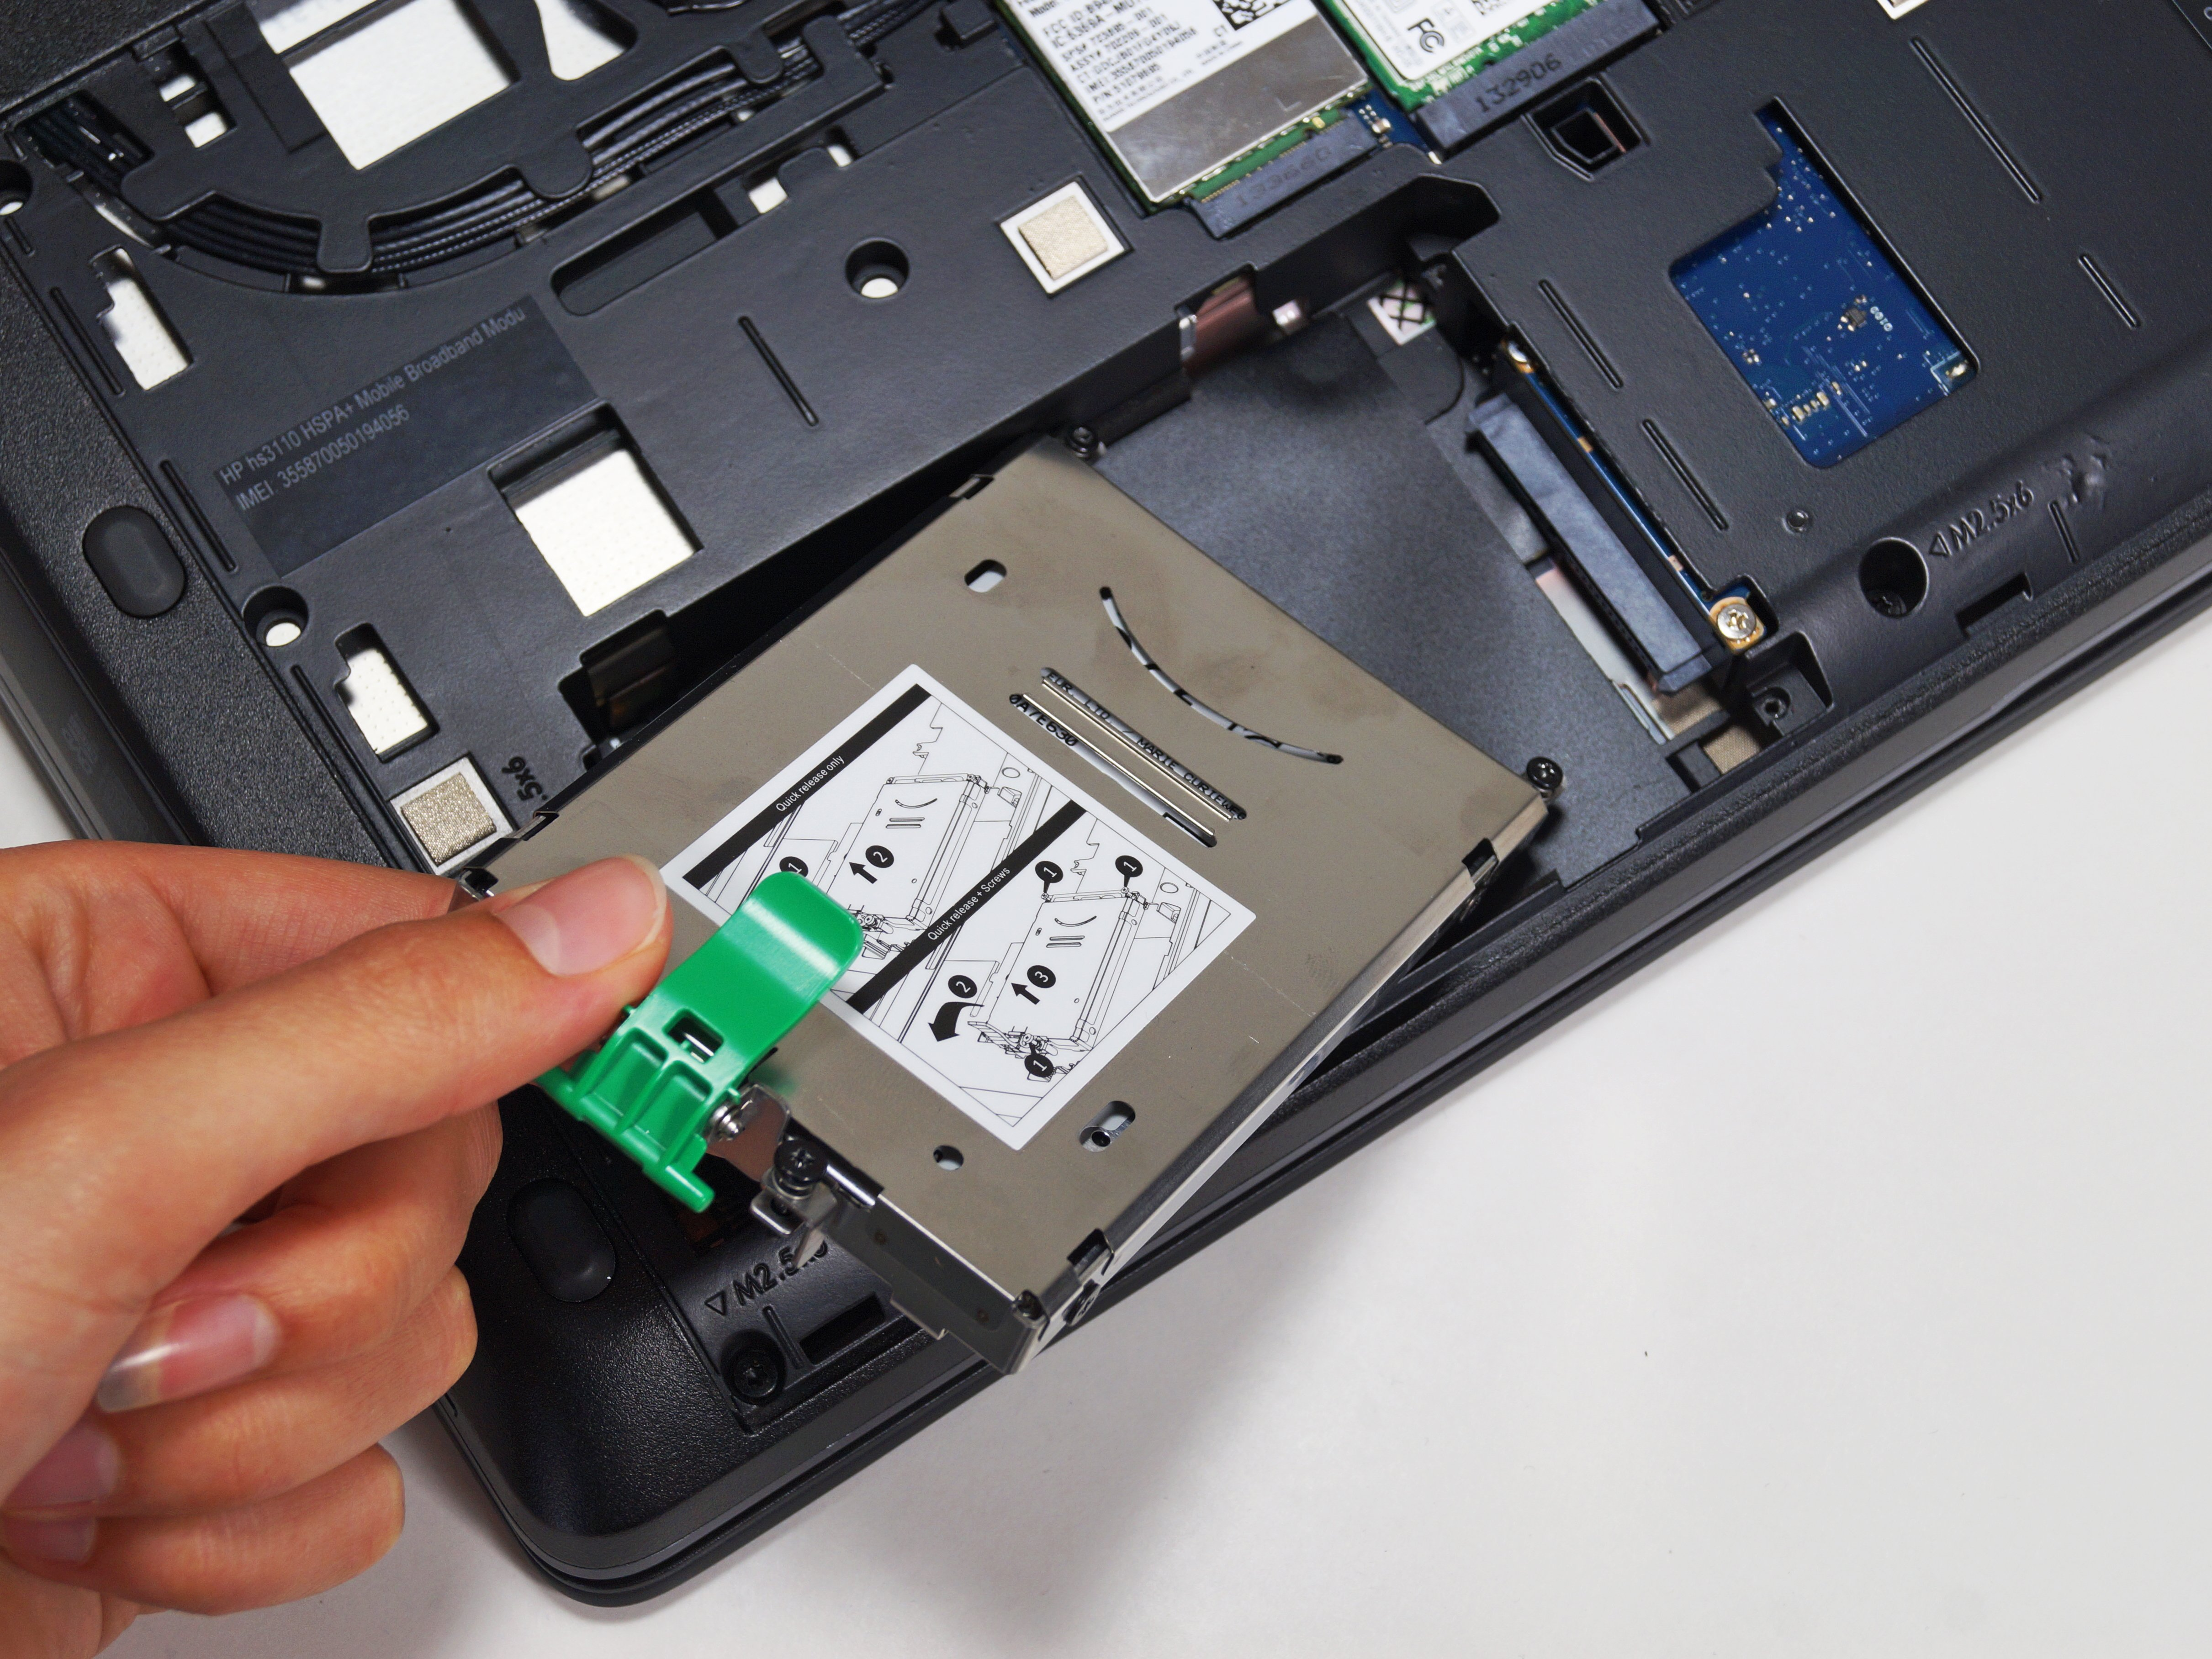 Hp Zbook 15 Hard Drive Replacement Ifixit Repair Guide